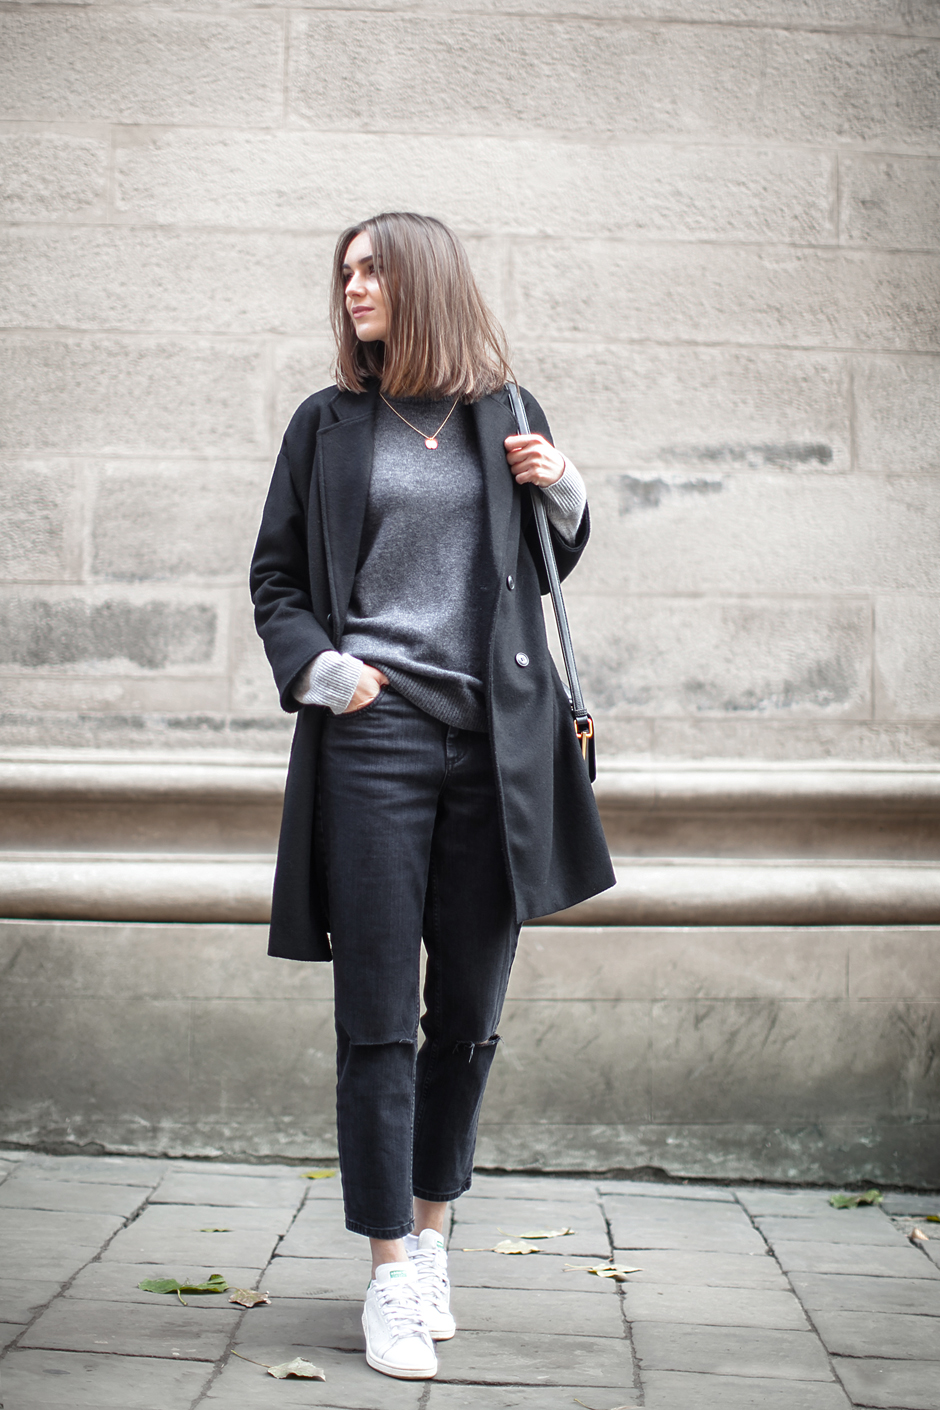 total-balck-outfit-sporty-fashion-agony